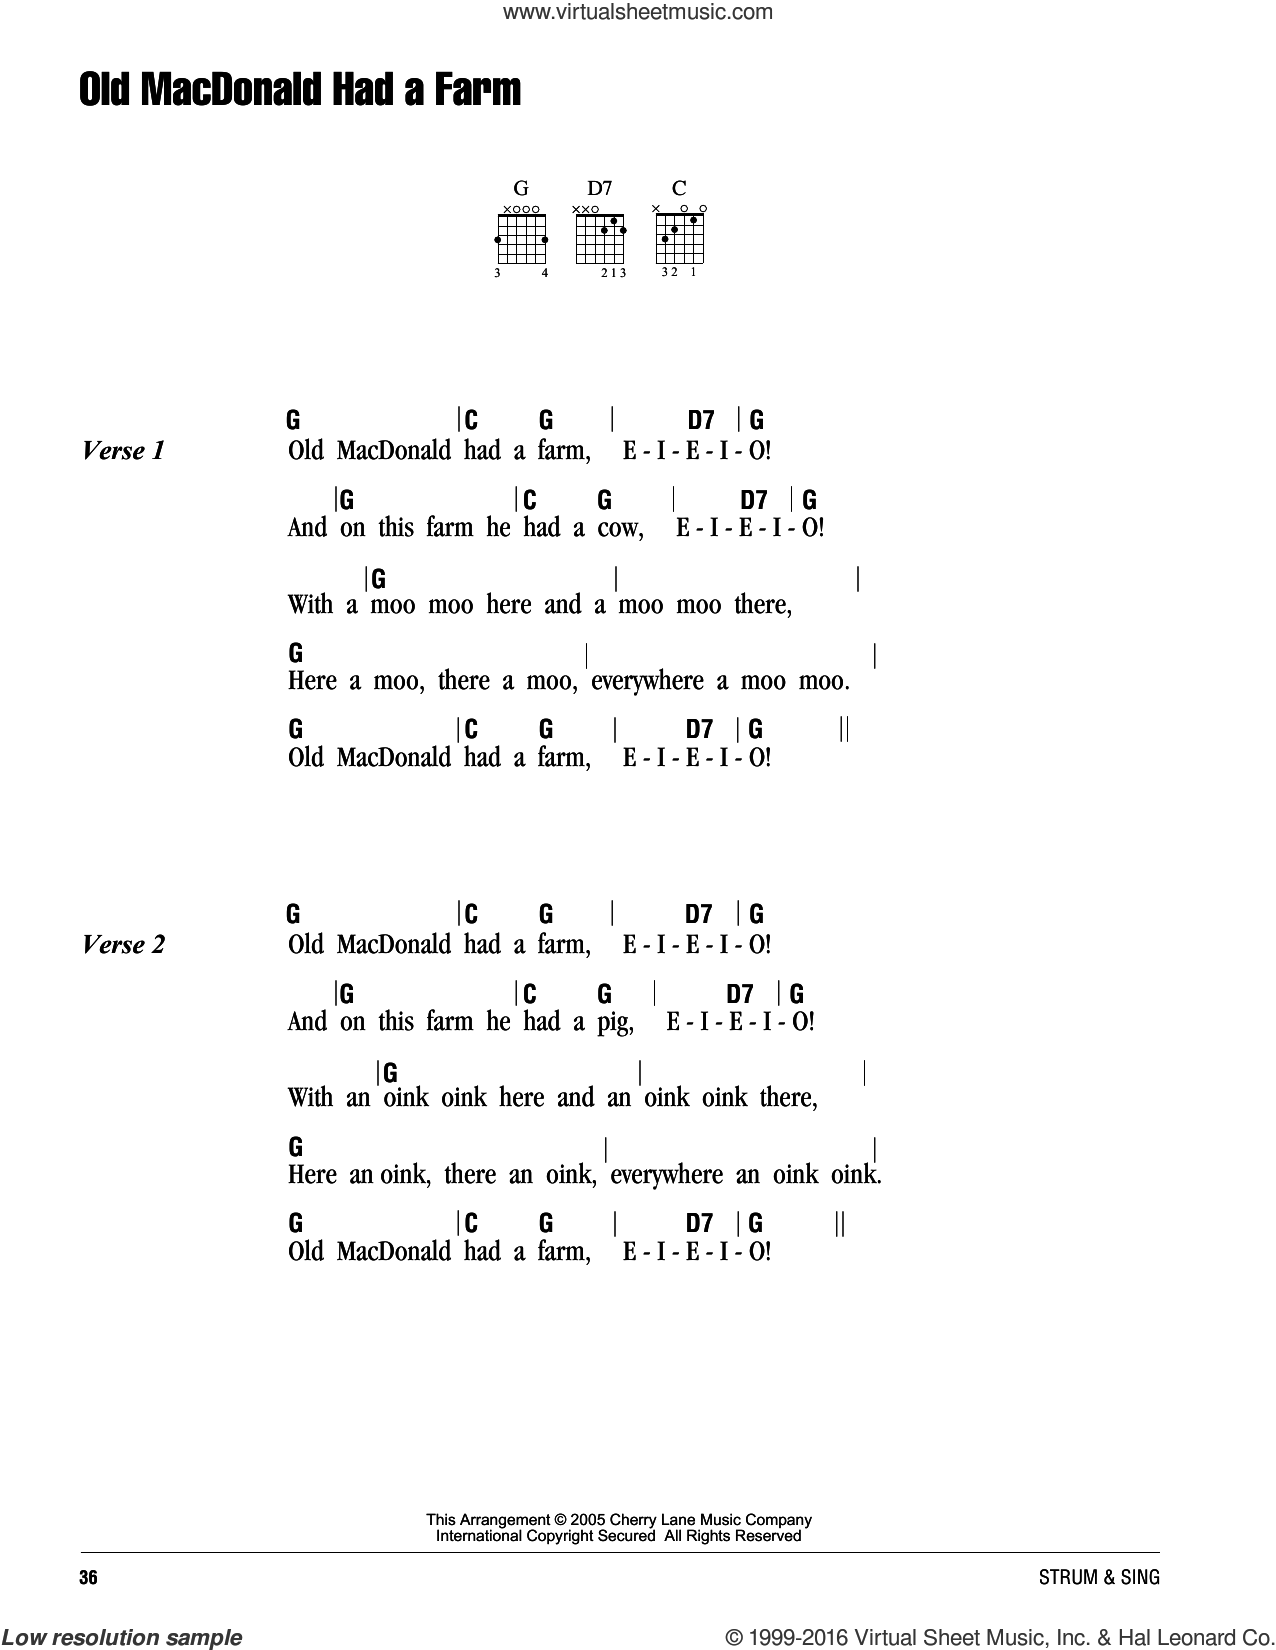 Old Macdonald Had A Farm sheet music for guitar (chords), intermediate